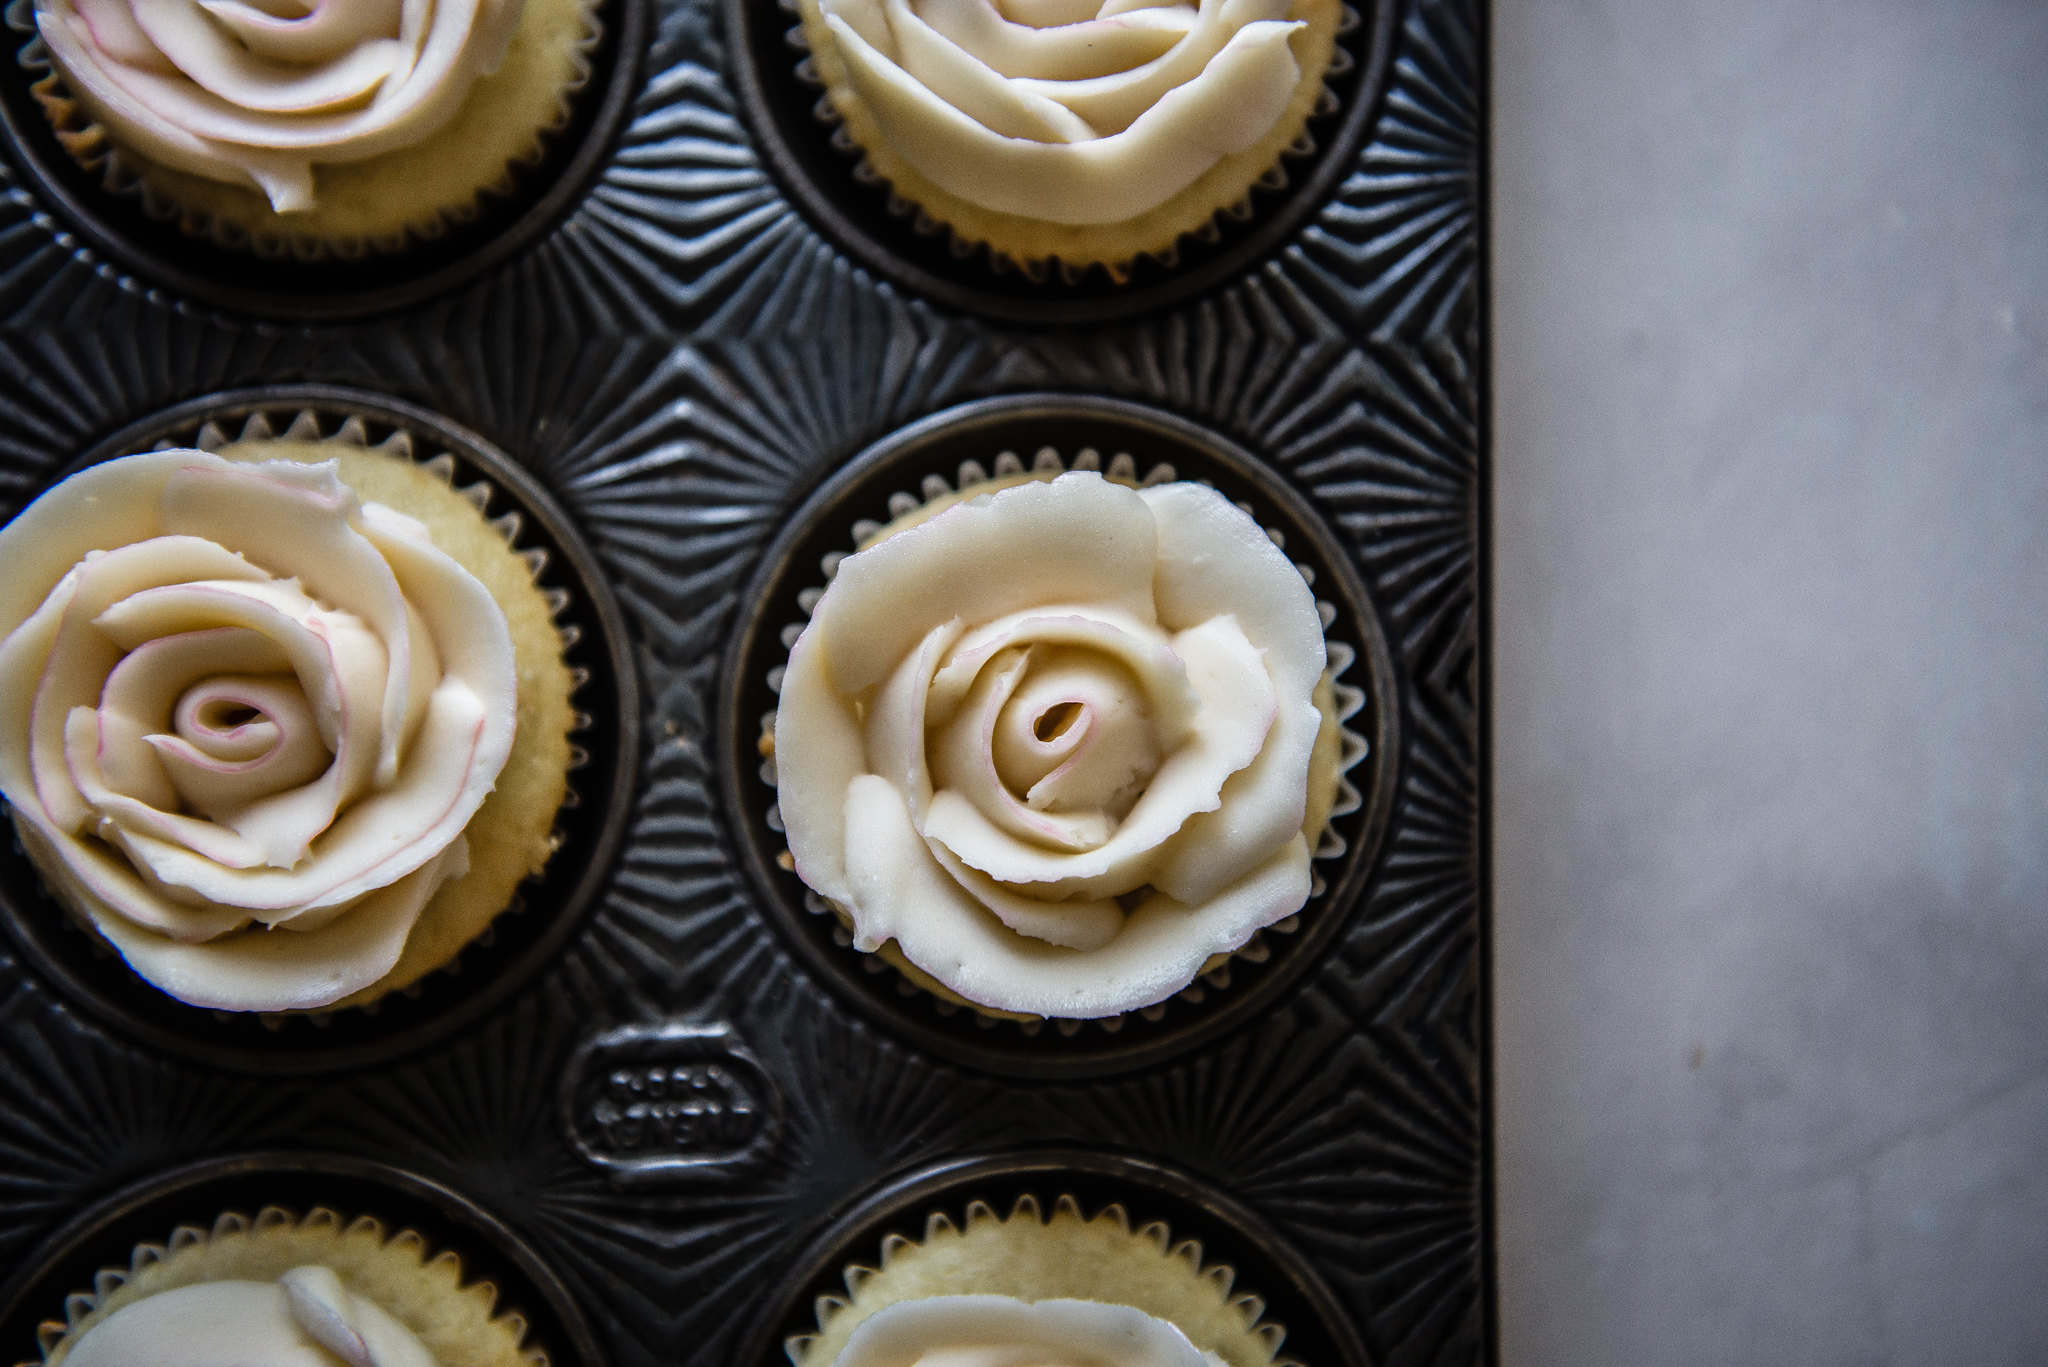 buttercream roses!